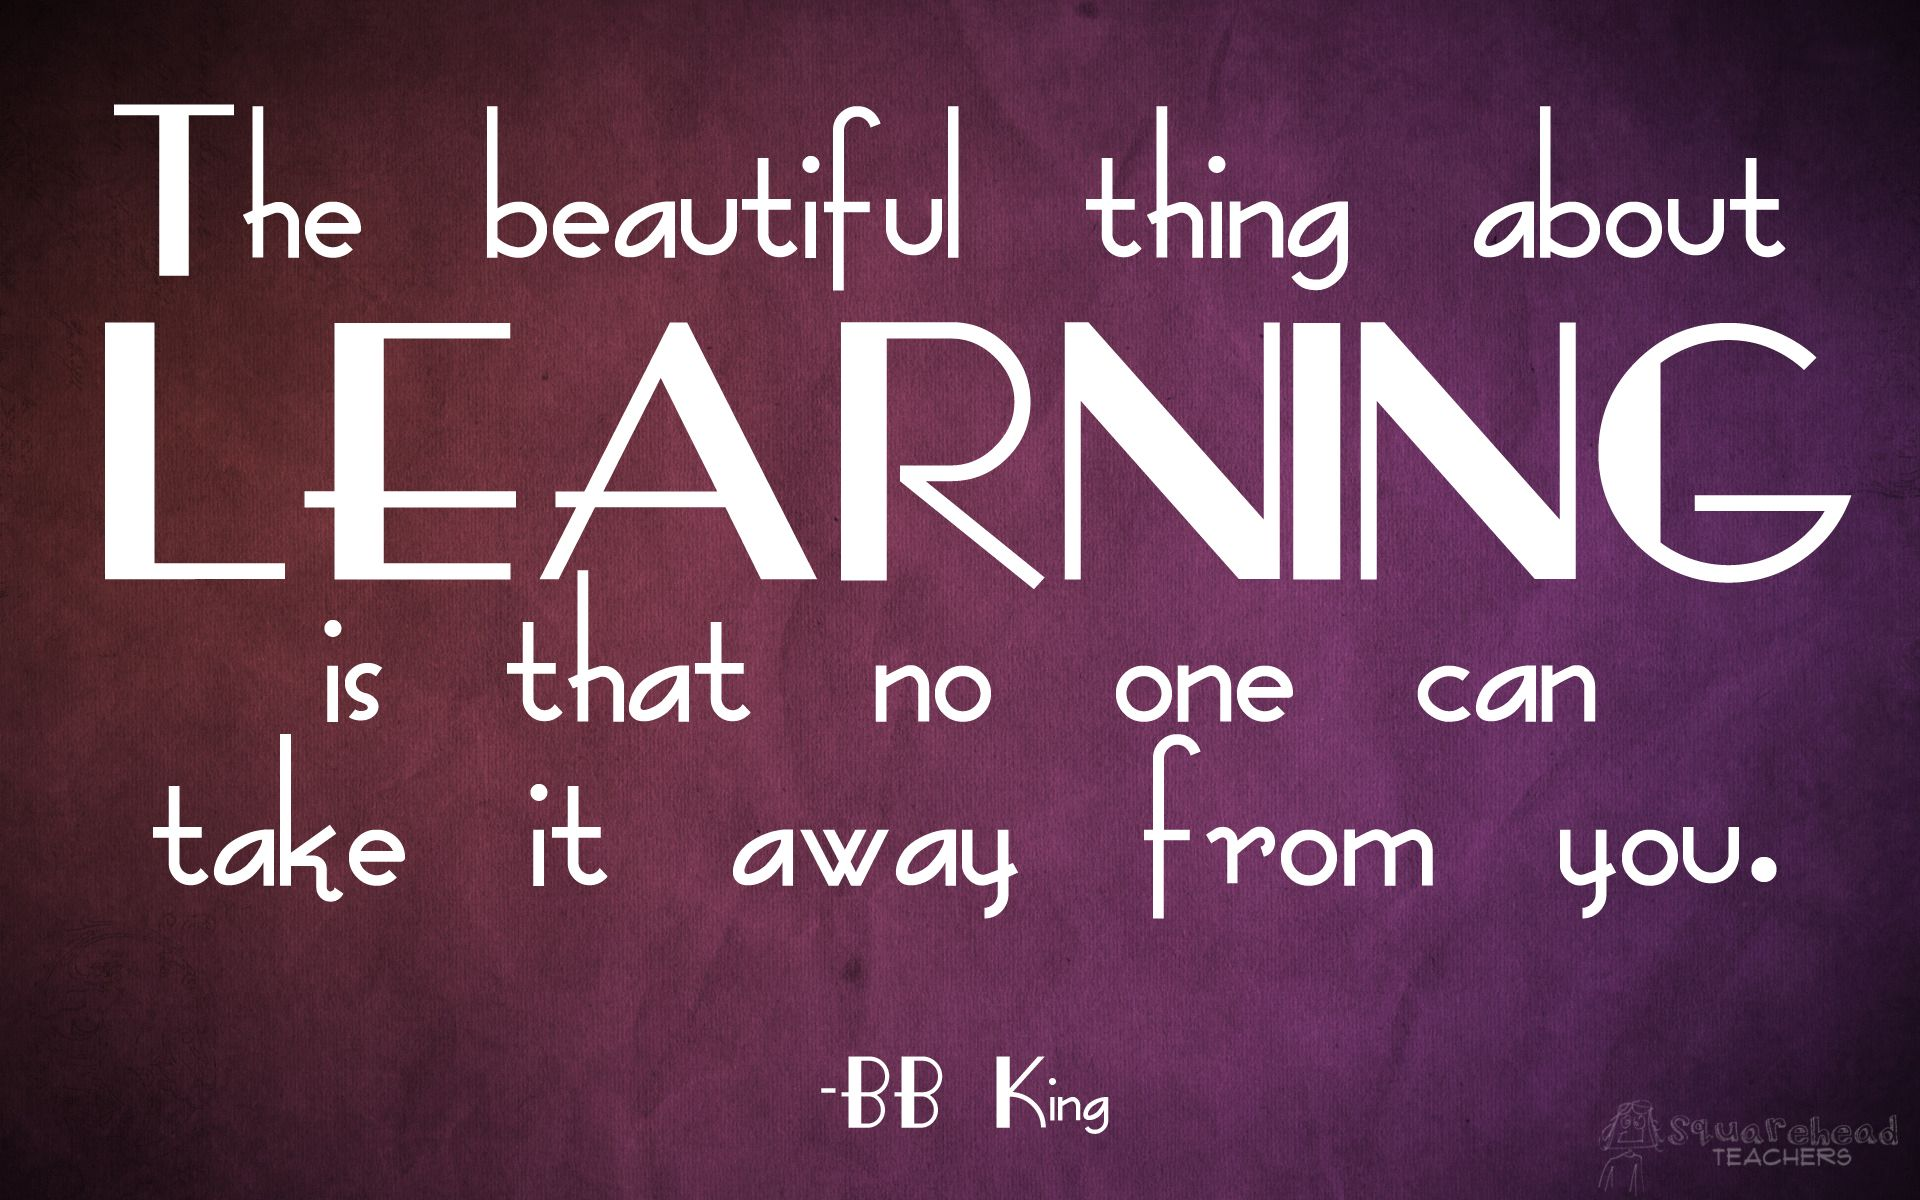 The beautiful thing about learning is that no one can take it away from you by BB King #leren